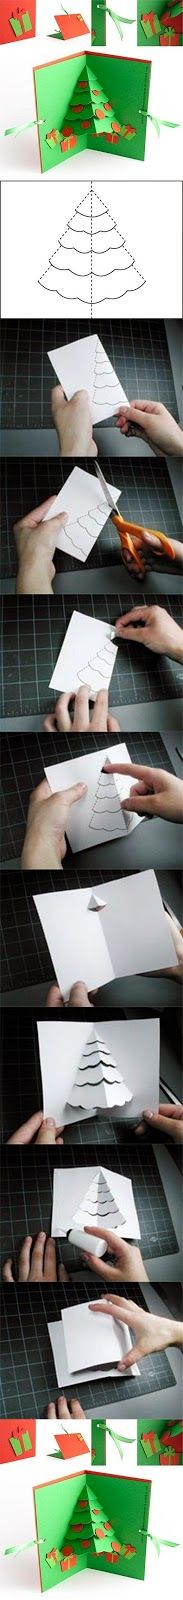 DIY Christmas Tree Pop Up Card